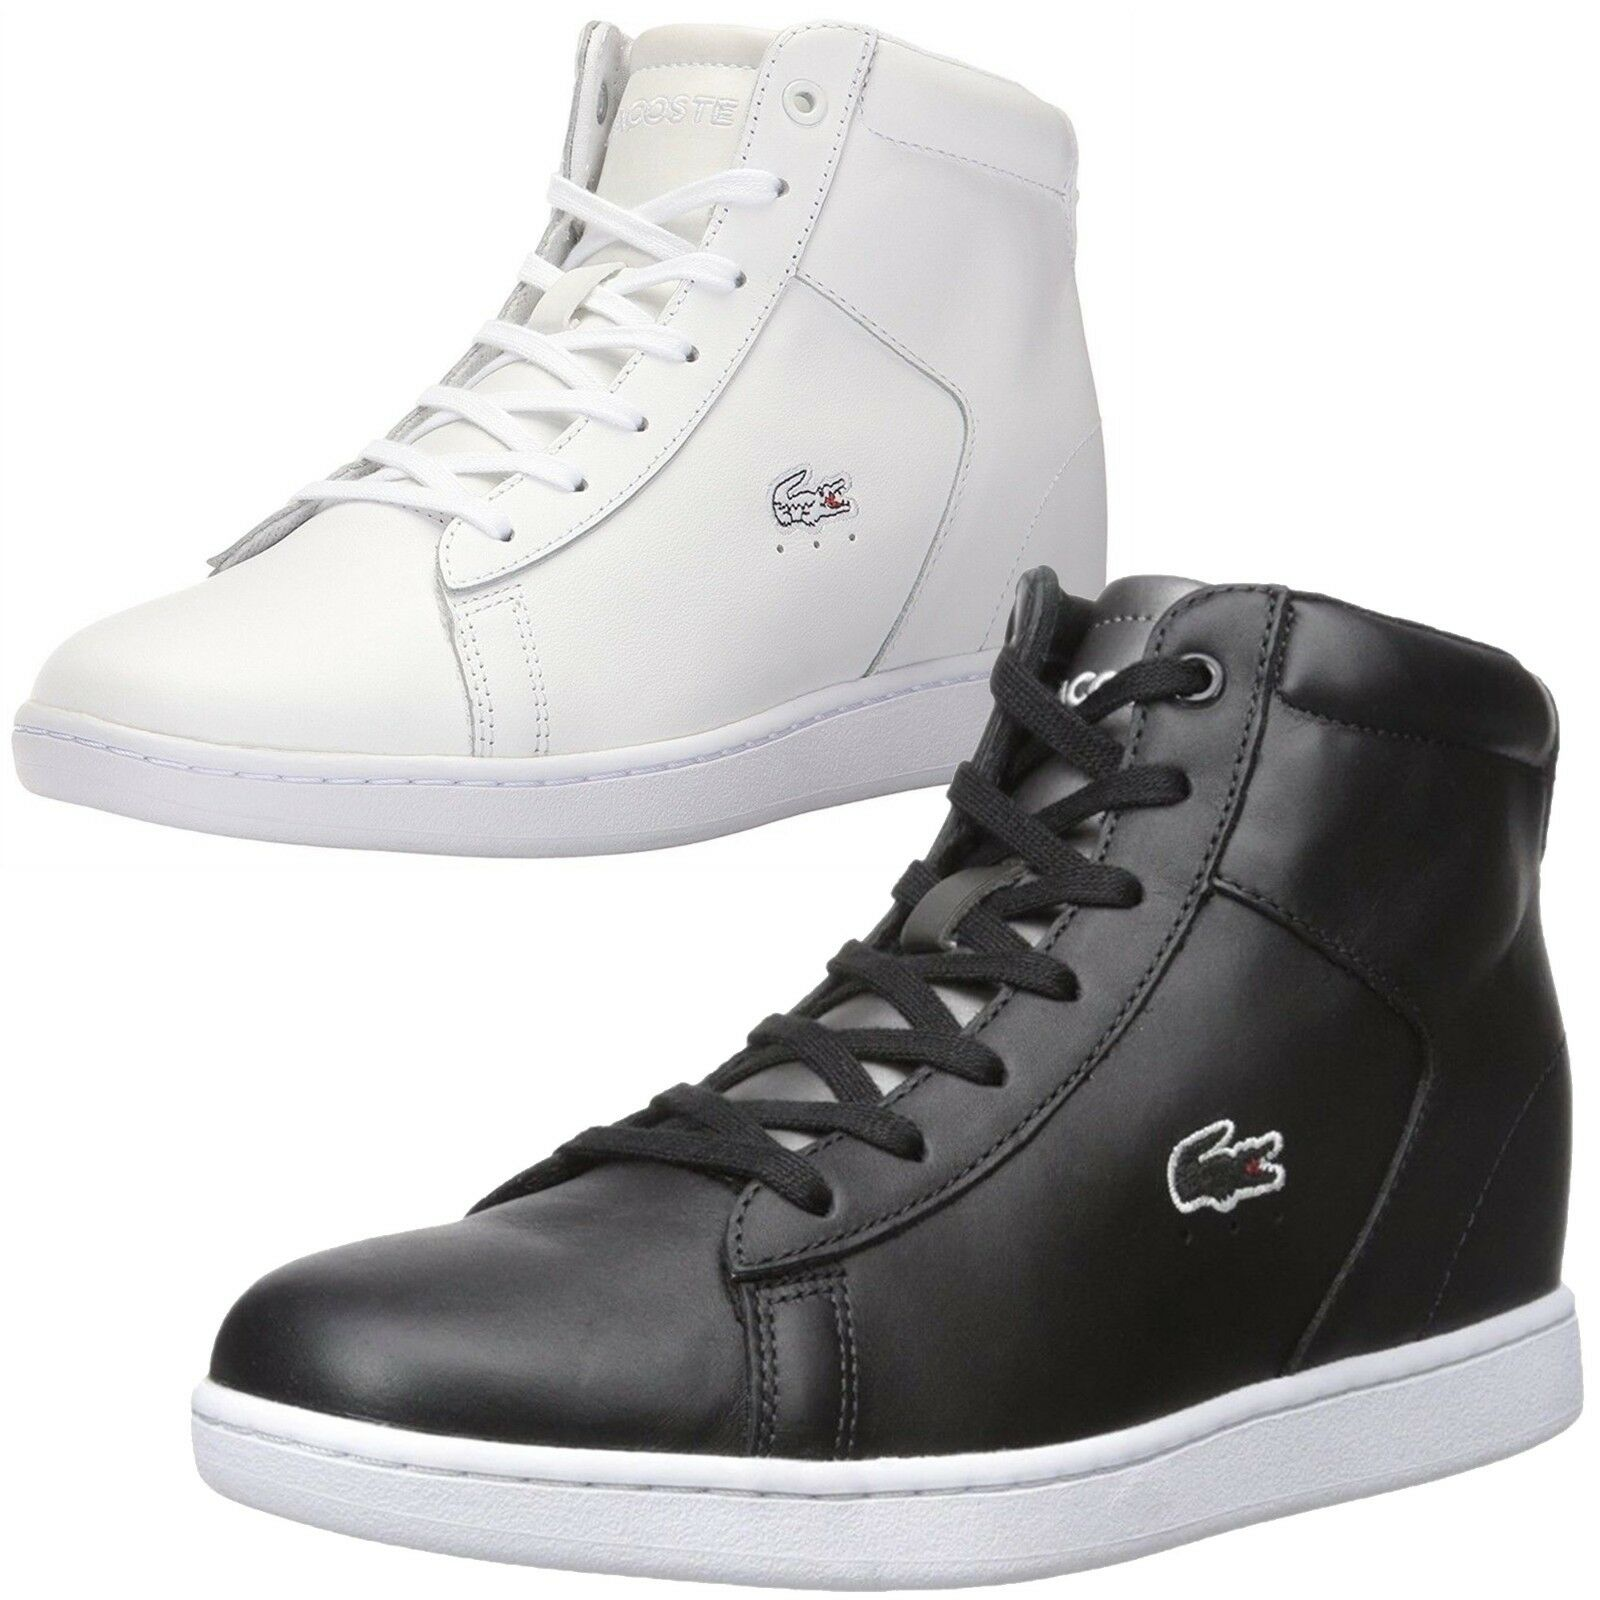 2a9005179b11 NEW Lacoste Women Athletic Carnaby Evo Wedge 317 317 317 Spw High Top  Fashion Sneakers 11603e